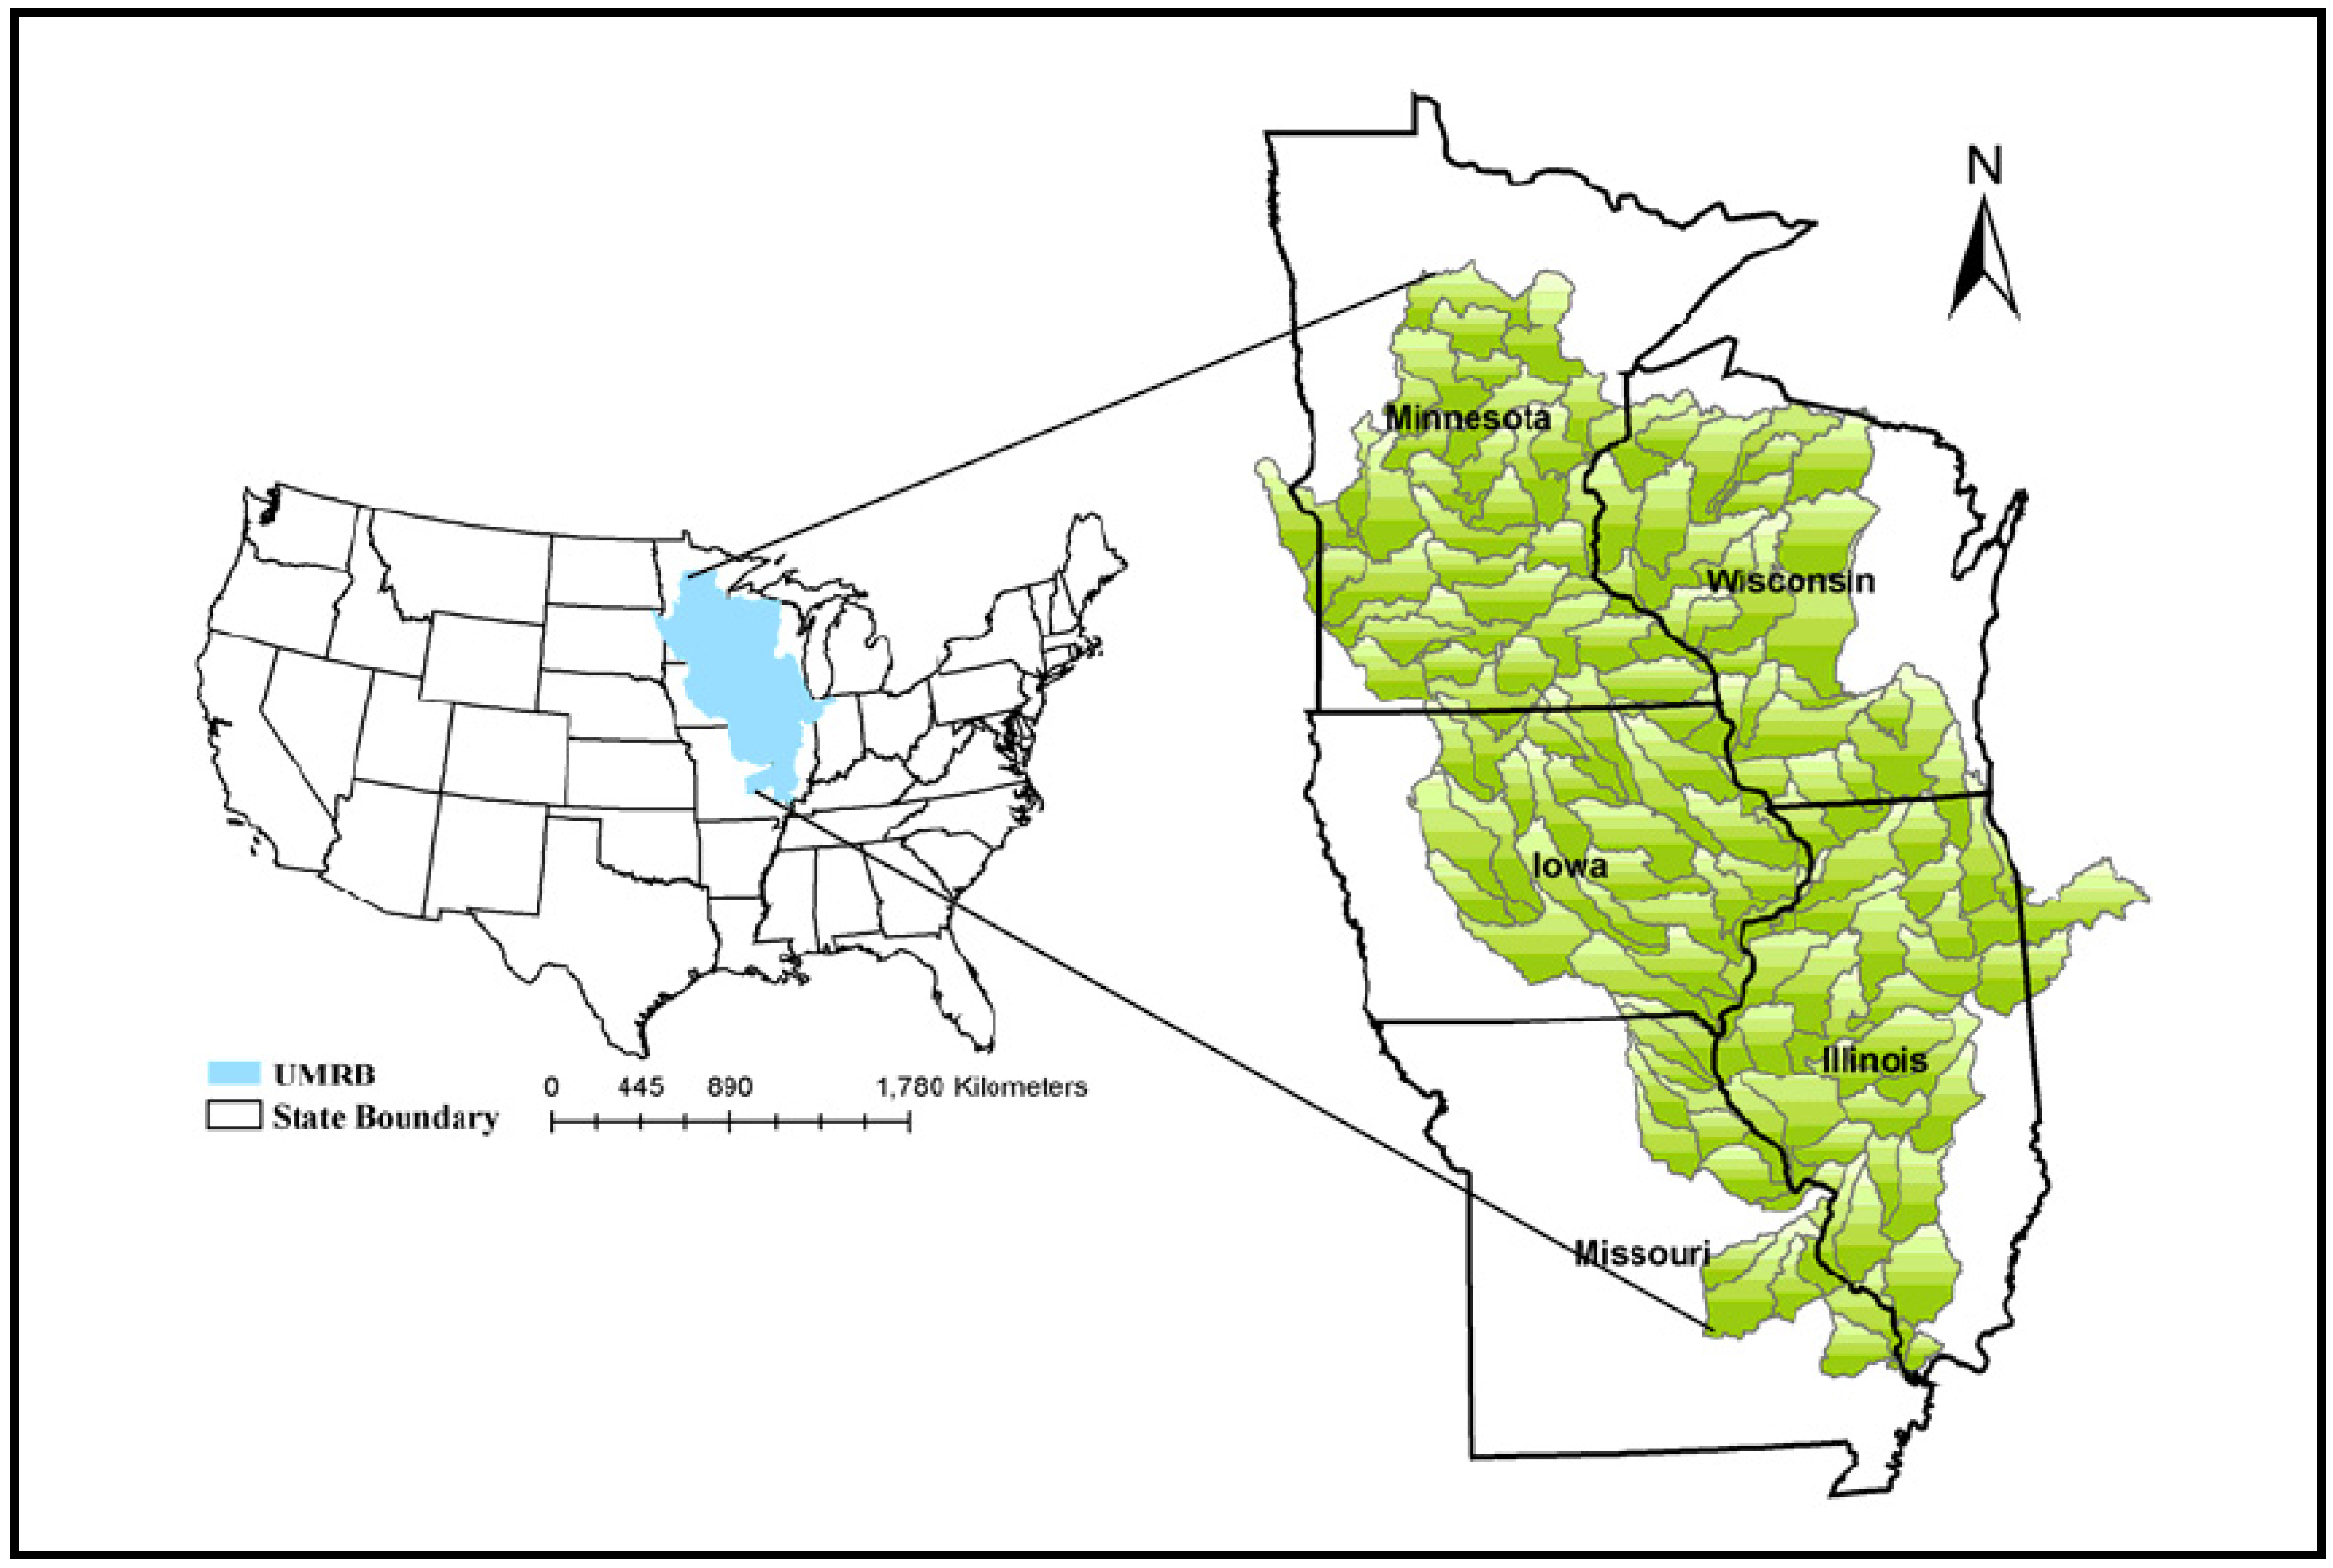 technologys impact on the upper mississippi river Filtration and excretion by zebra mussels: implications for water quality impacts in lake pepin, upper mississippi river william f james , john w barko , mike davis , harry l eakin , james t rogala & andrew c miller.